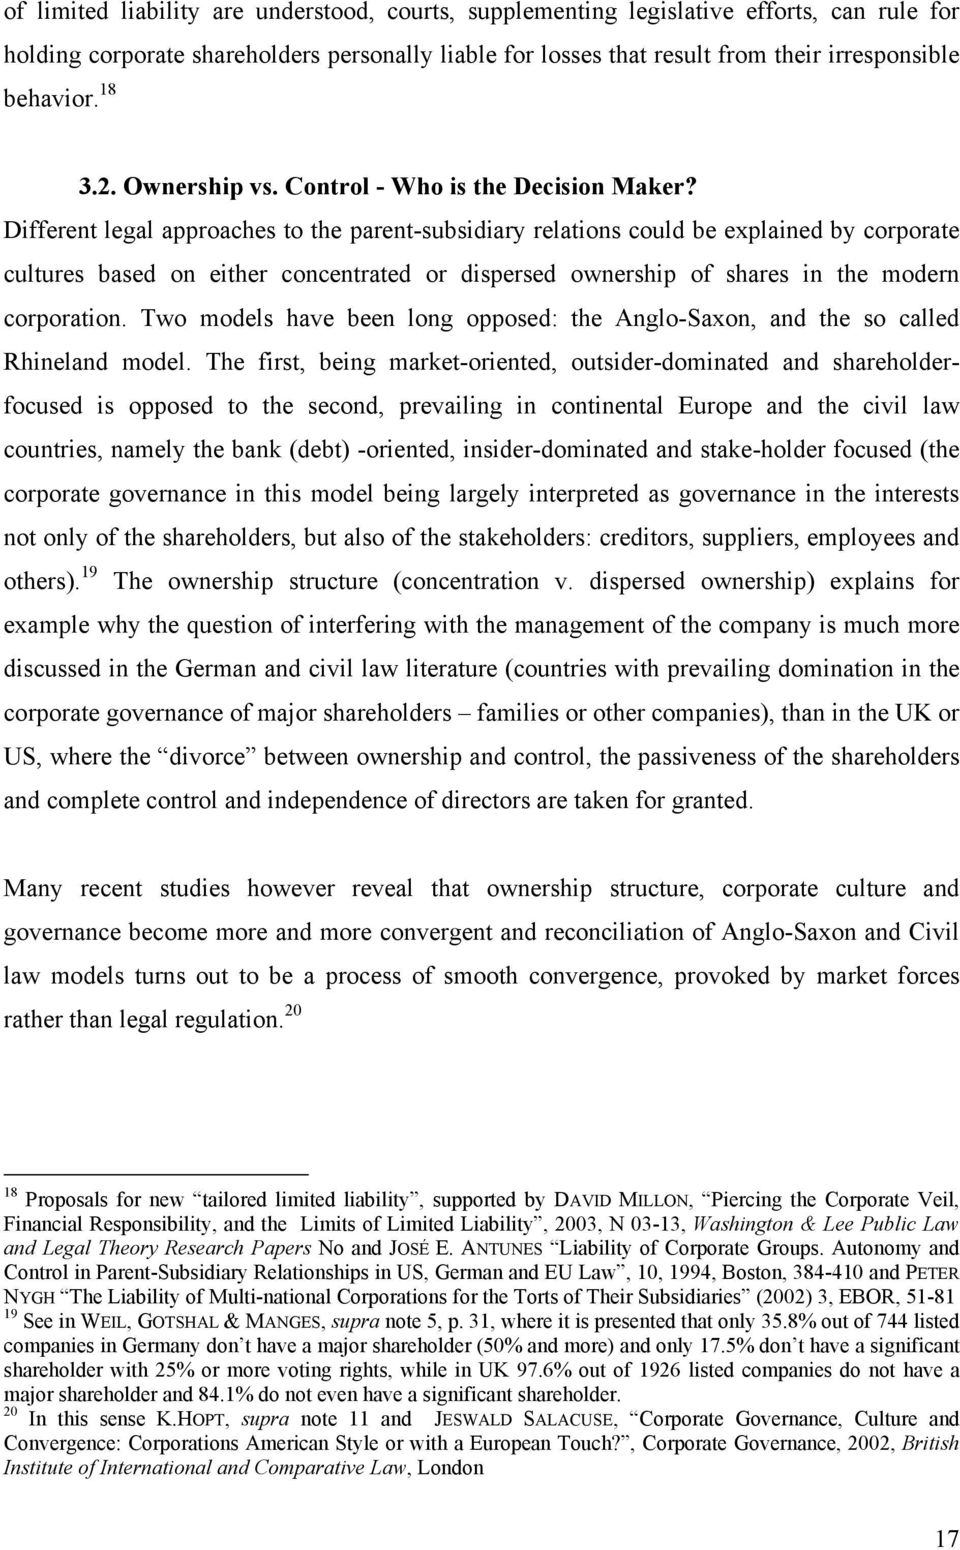 Different legal approaches to the parent-subsidiary relations could be explained by corporate cultures based on either concentrated or dispersed ownership of shares in the modern corporation.